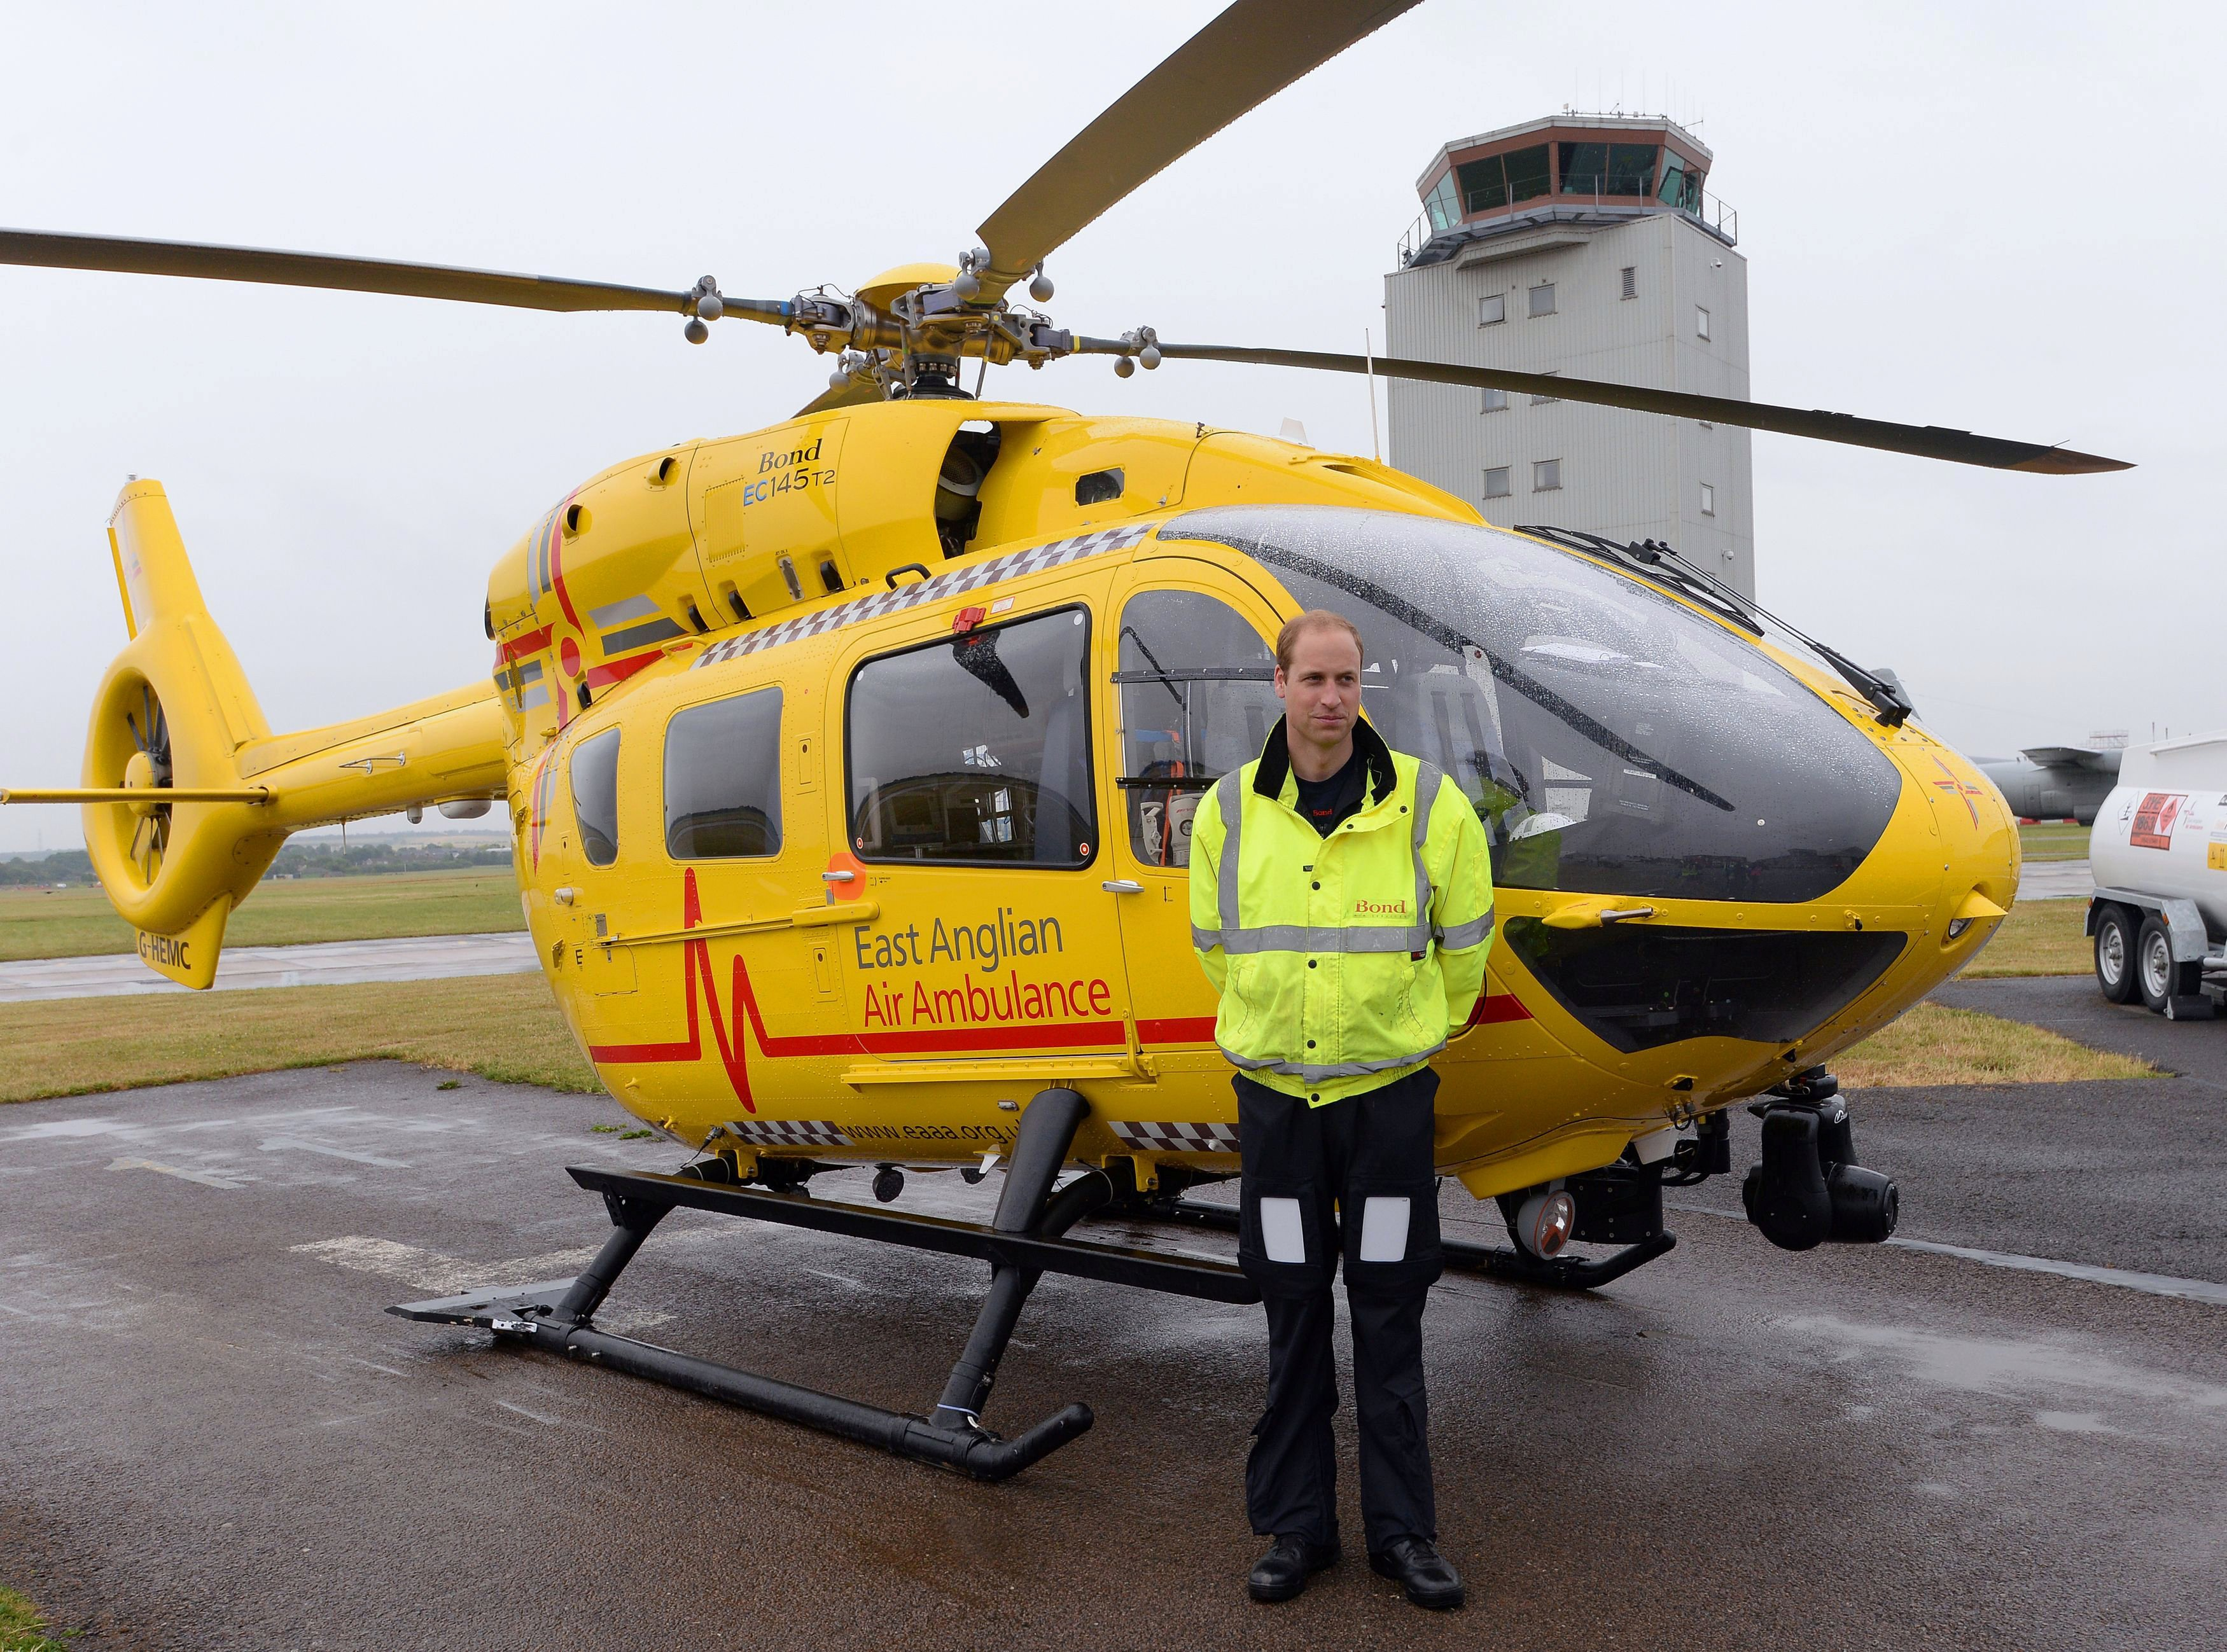 Britain's Prince William poses by his helicopter as he begins his new job as a co-pilot with the East Anglian Air Ambulance at Cambridge Airport